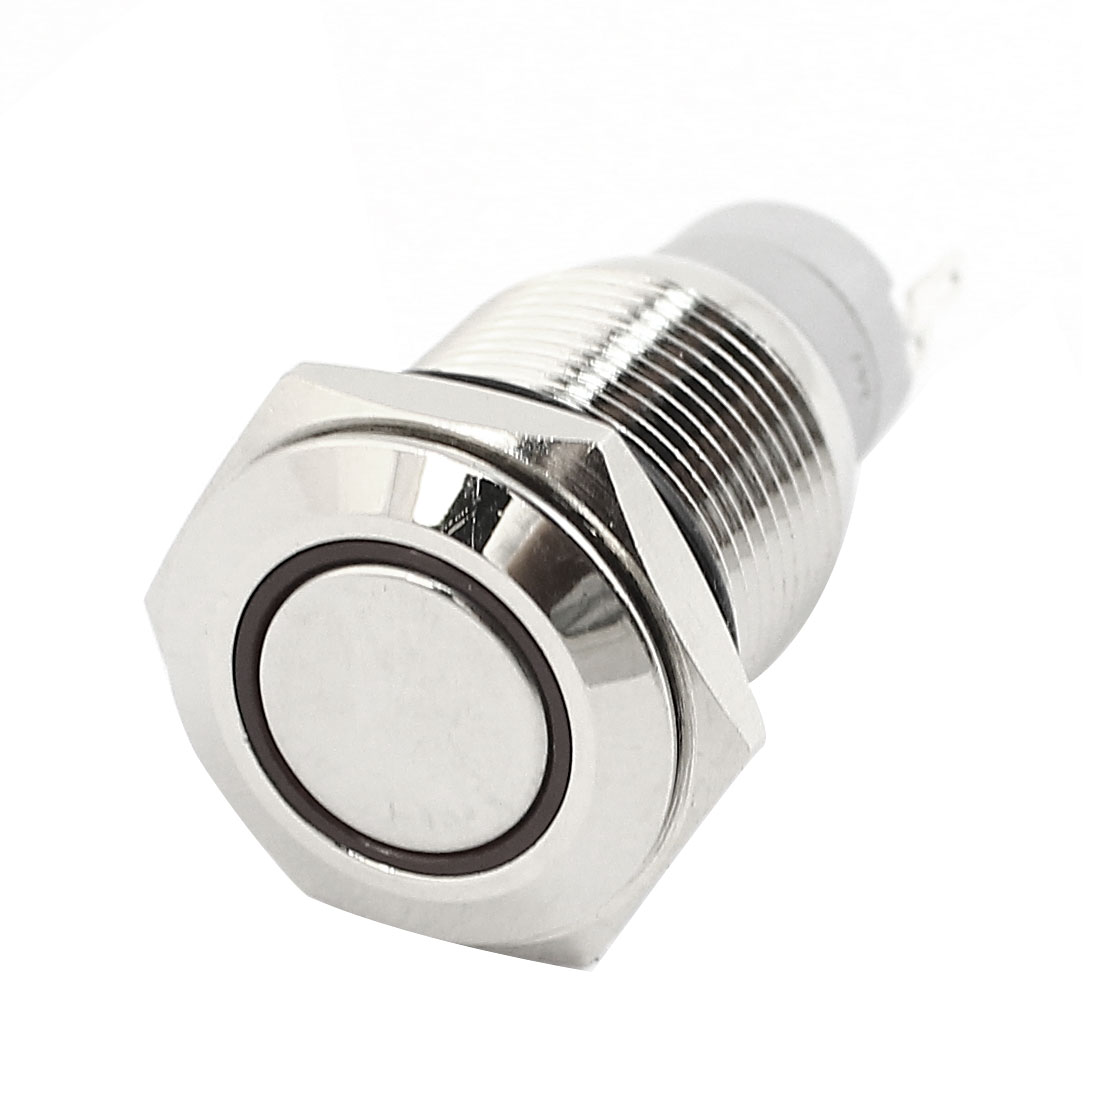 DC24V 16mm Dia Thread Panel Mount SPDT 5Pin Momentary Control Red LED Angel Eye Metal Pushbutton Switch